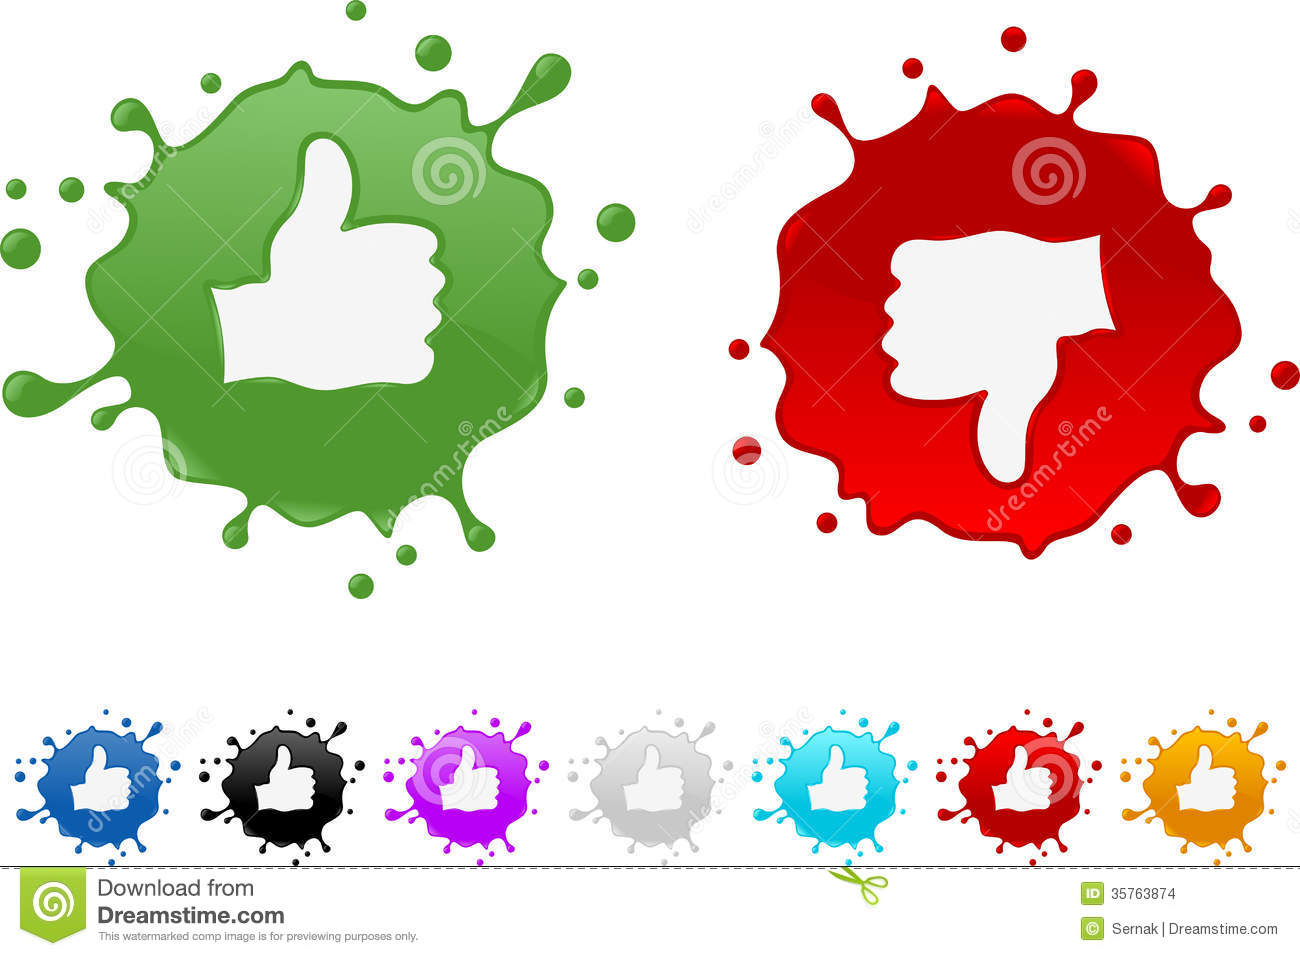 Thumbs up thumbs down clipart image free stock Thumbs Up Thumbs Down Stock Illustrations – 340 Thumbs Up Thumbs ... image free stock